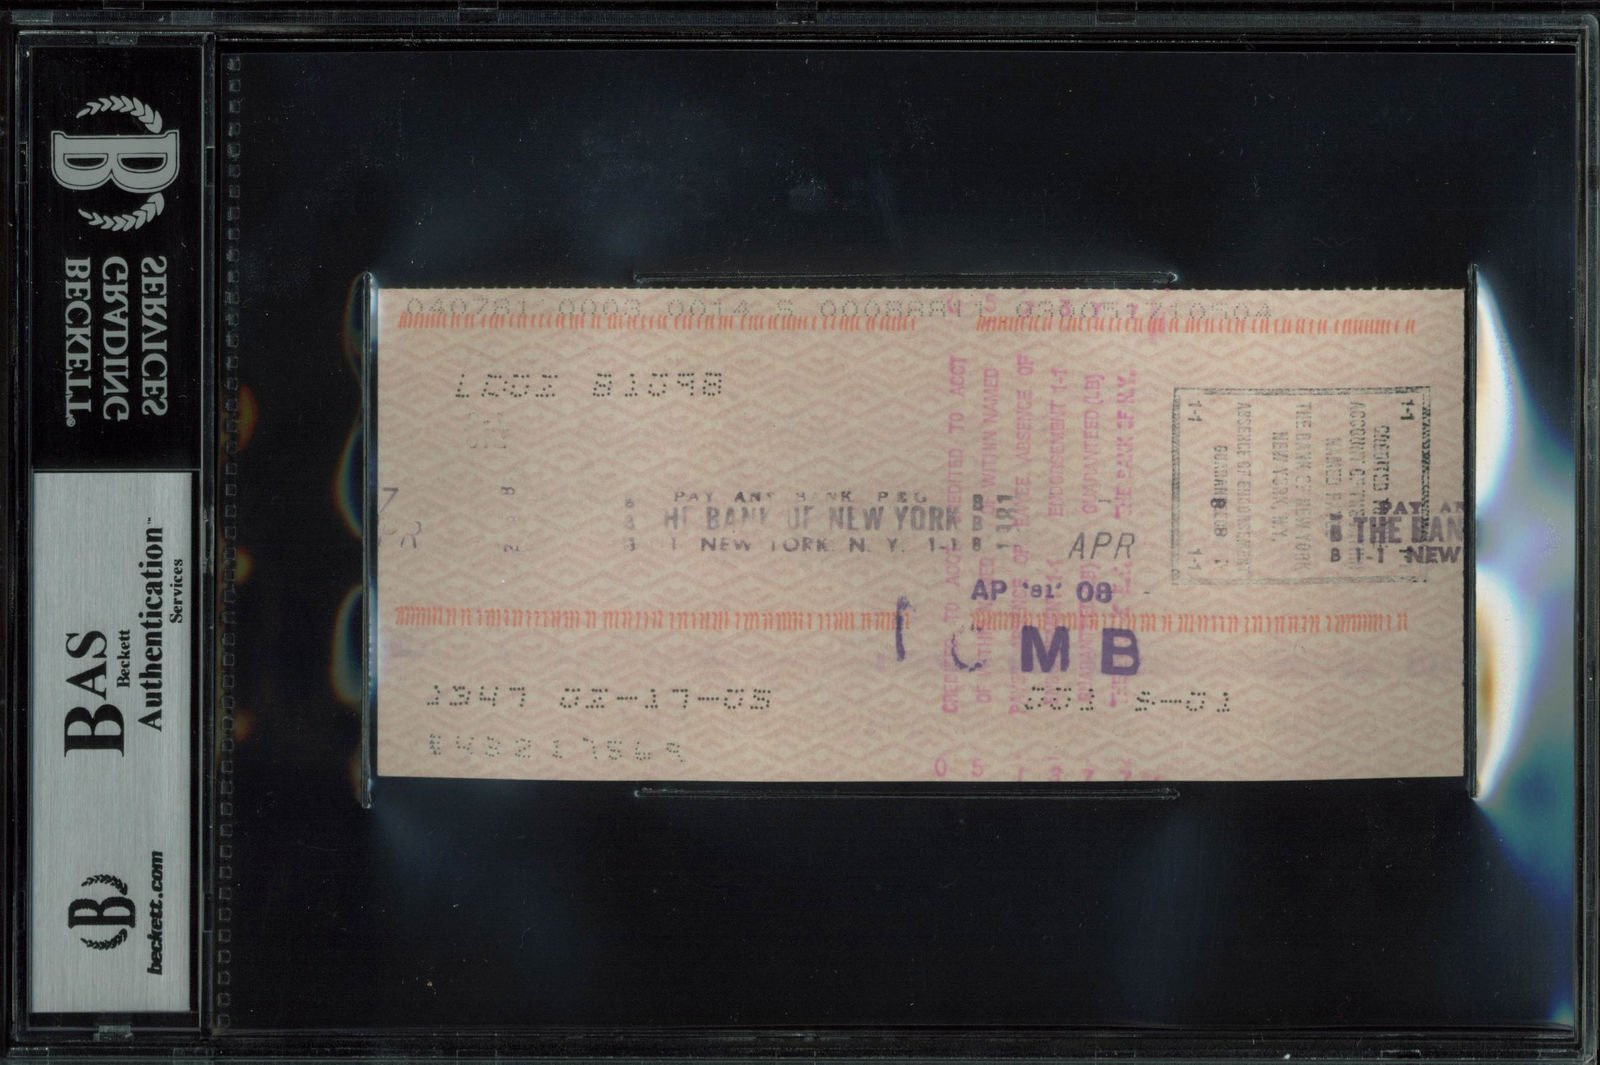 Greta Garbo Autographed Signed Personal Check Dated April 2 1981 Autographed Signed Bas Slabbed Certified Authentic